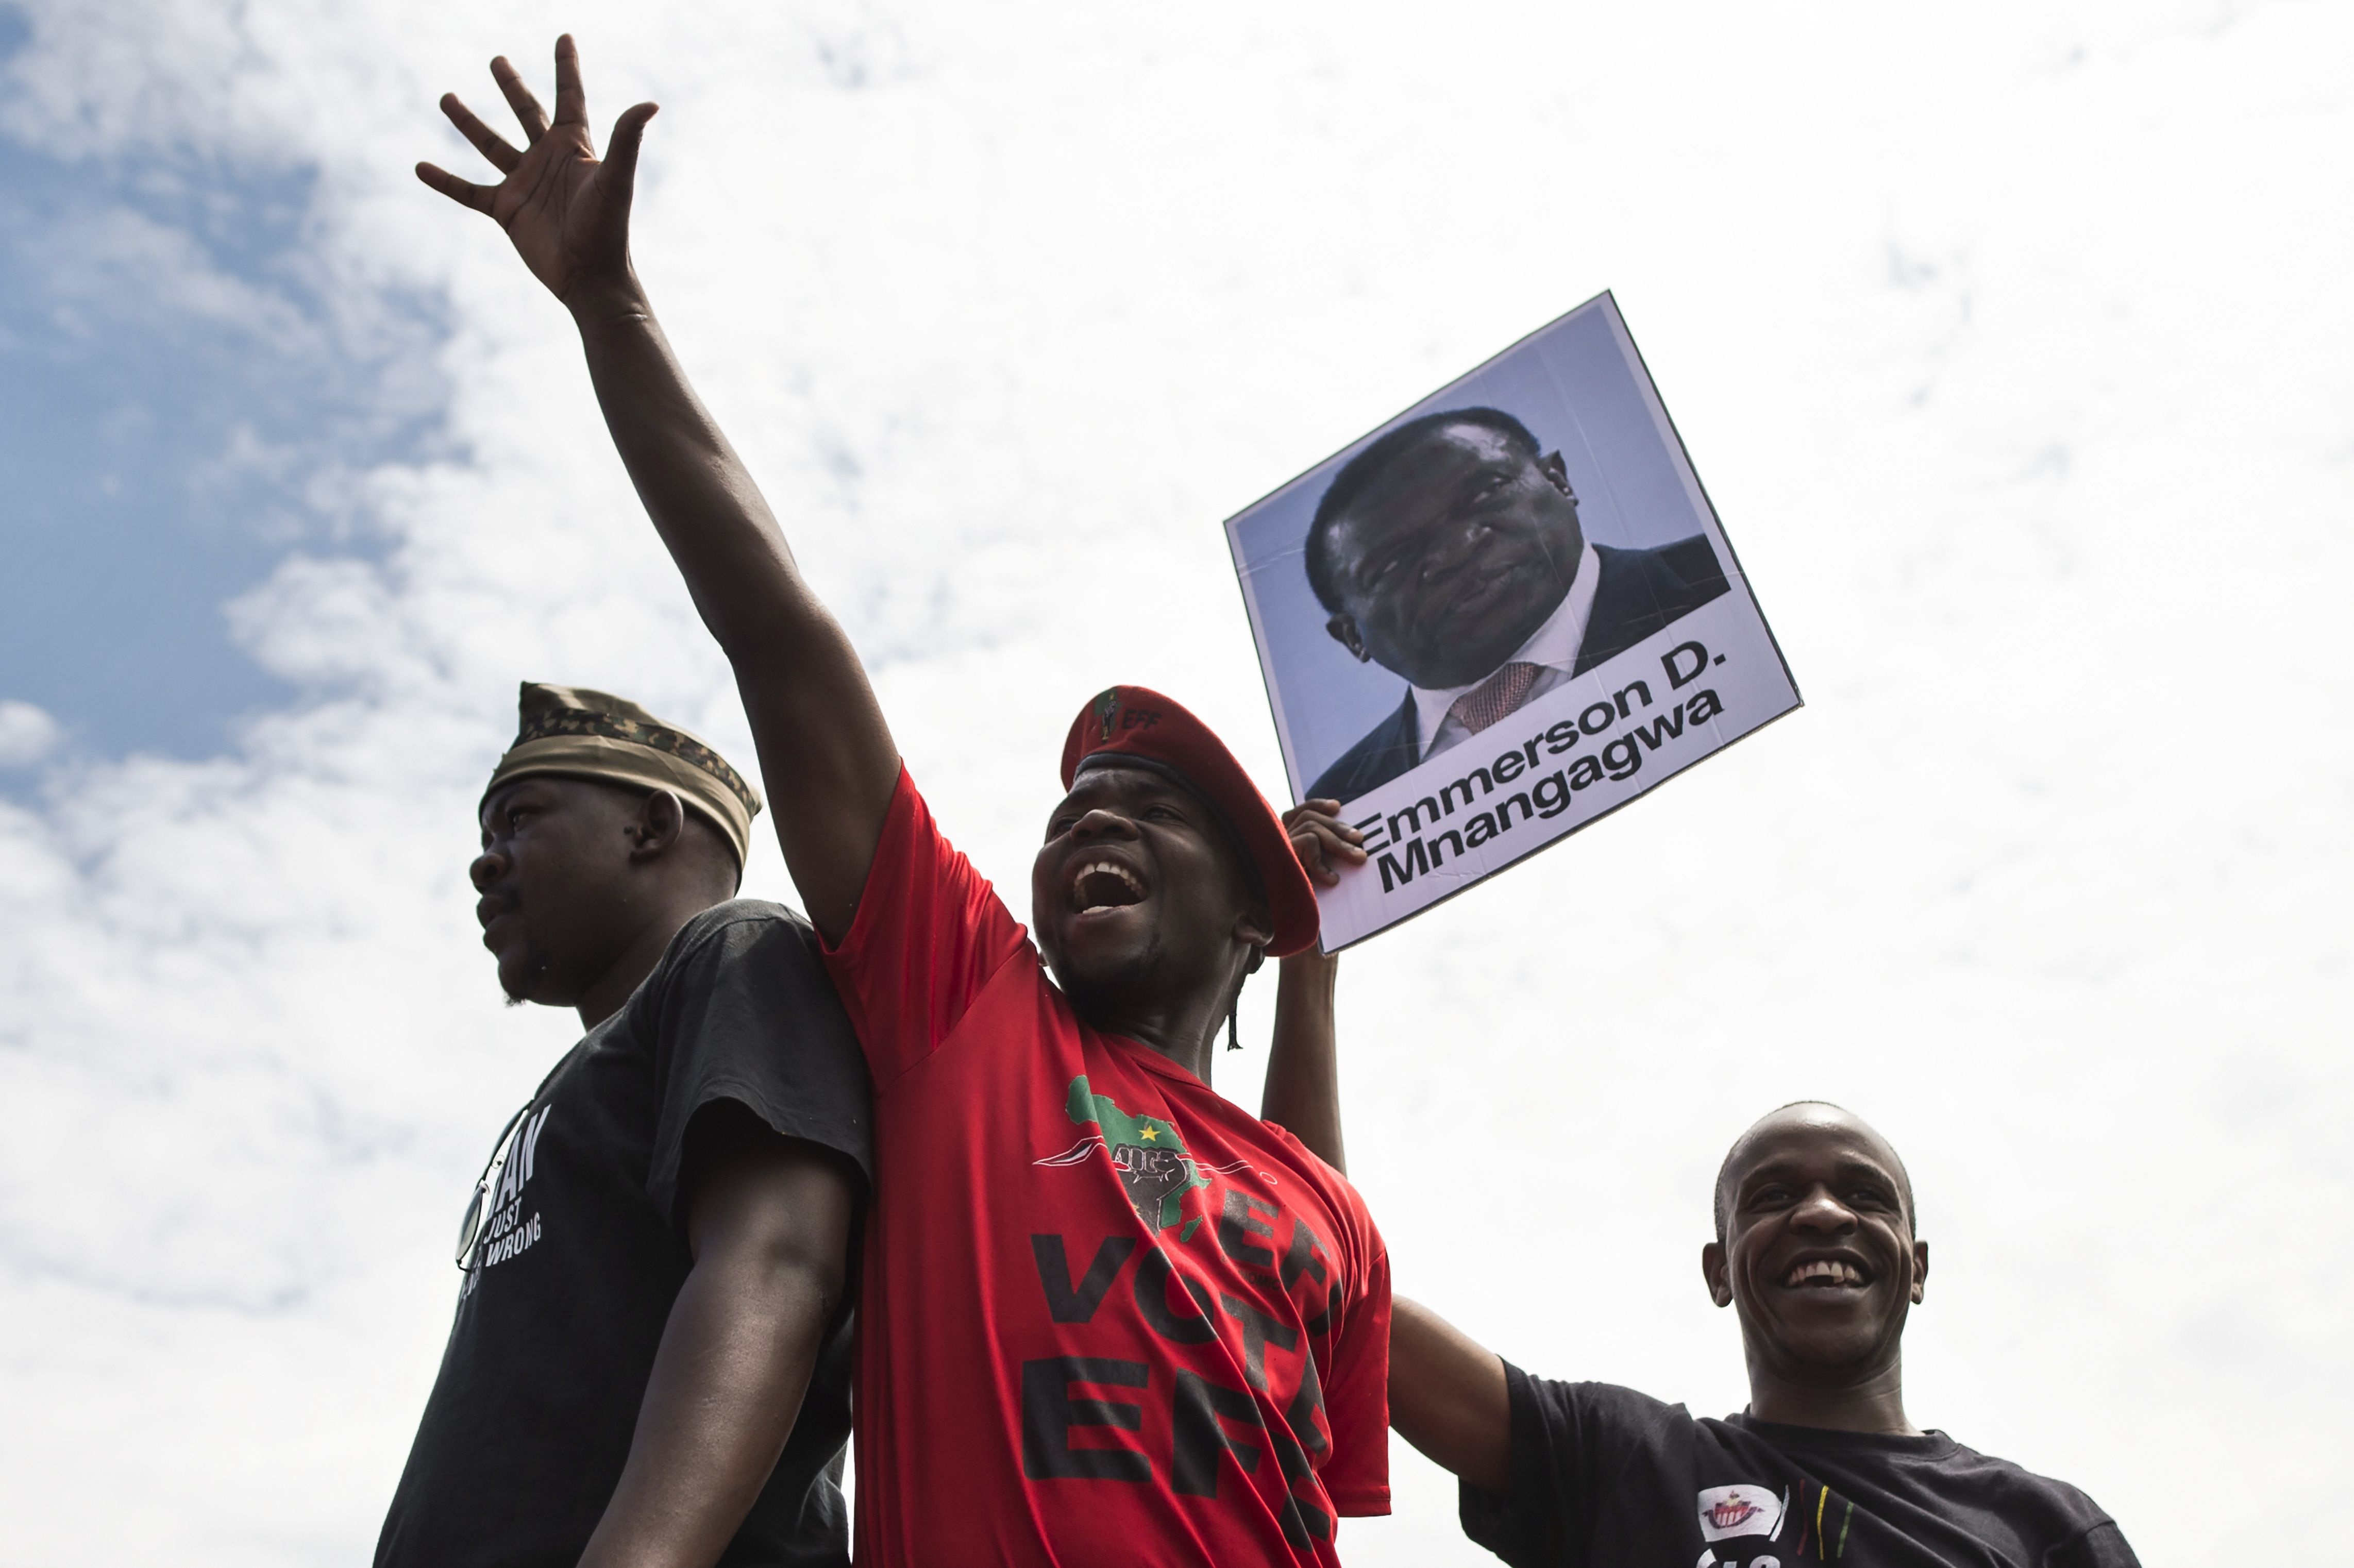 University of Zimbabwe students, holding a portrait of former vice president Emmerson Mnangagwa, take part in a demonstration on Nov. 20, 2017 in Harare, to demand the withdrawal of Grace Mugabe's doctorate